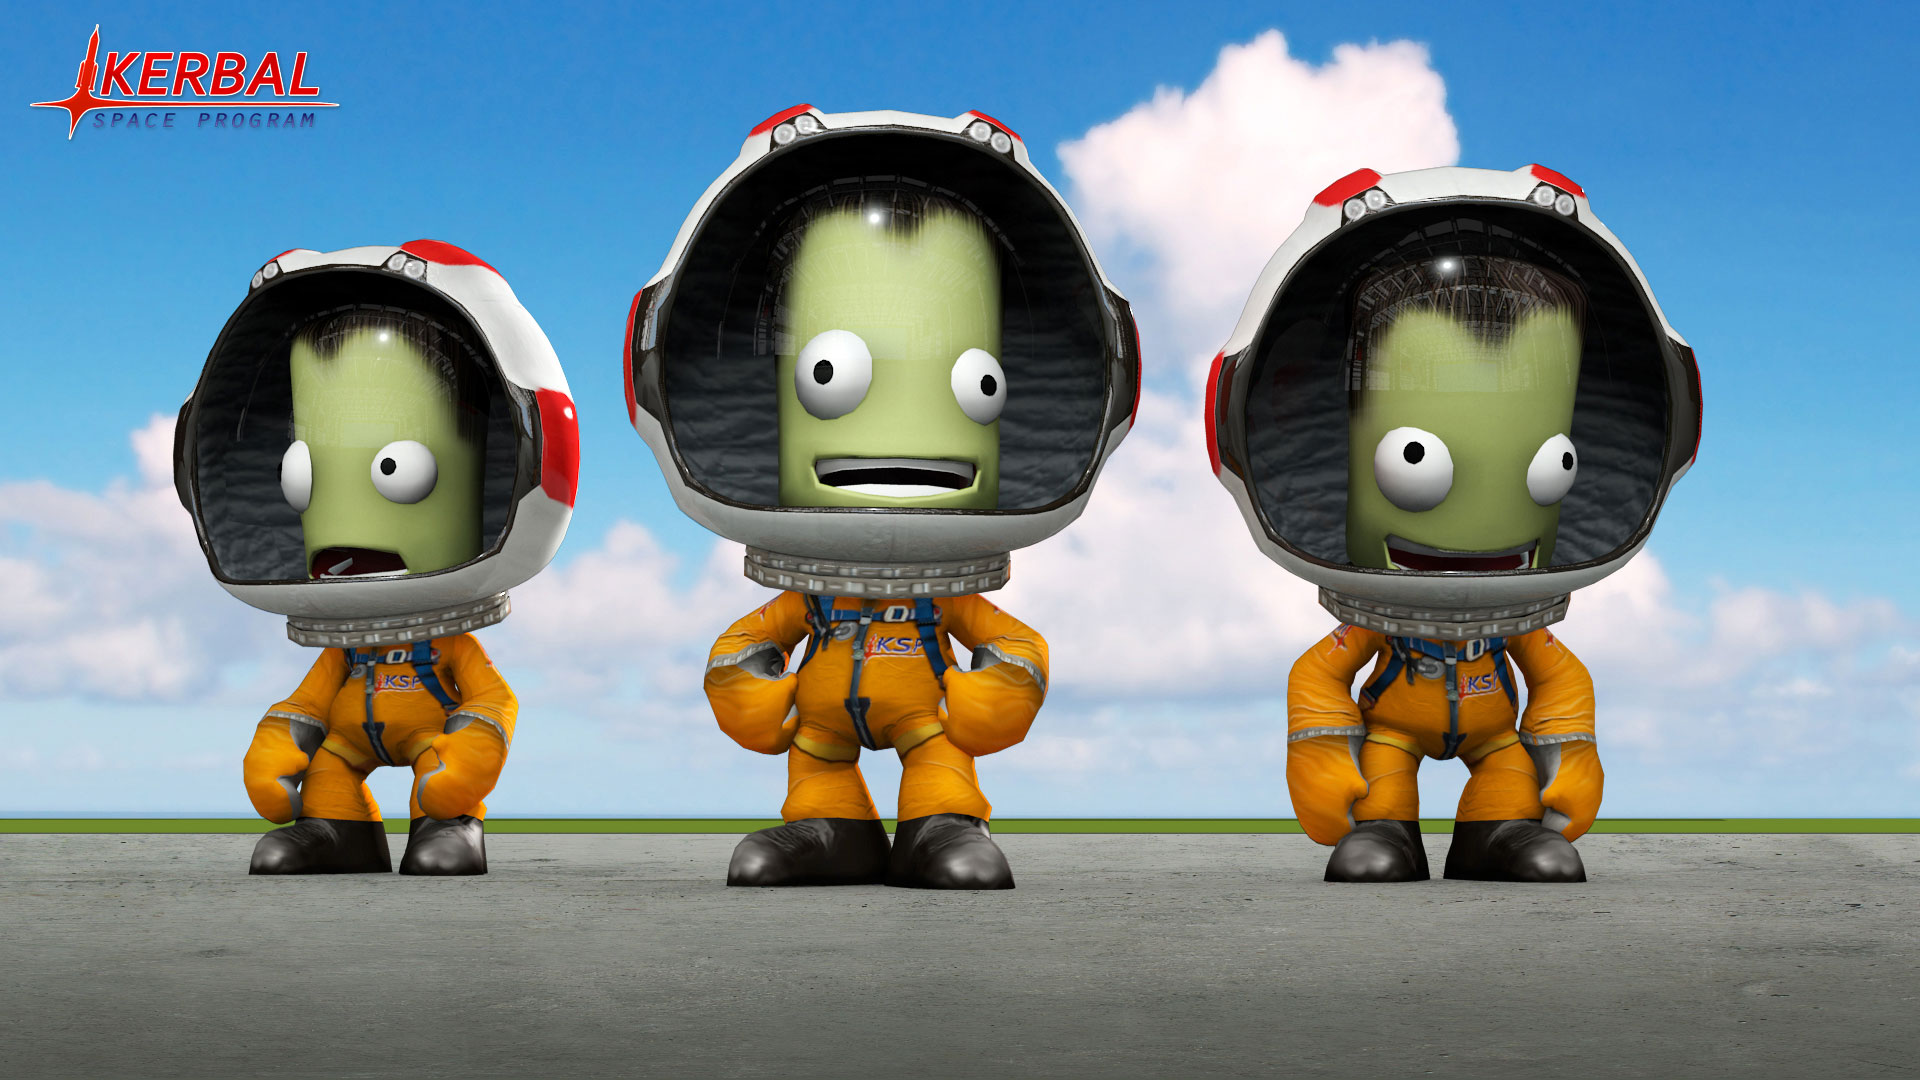 kerbal space program bringing rocket science to games rocketstem jebediah bob bill and valentina are the original four astronauts in kerbal but you can create your own too credit squad monkey squad s a de c v